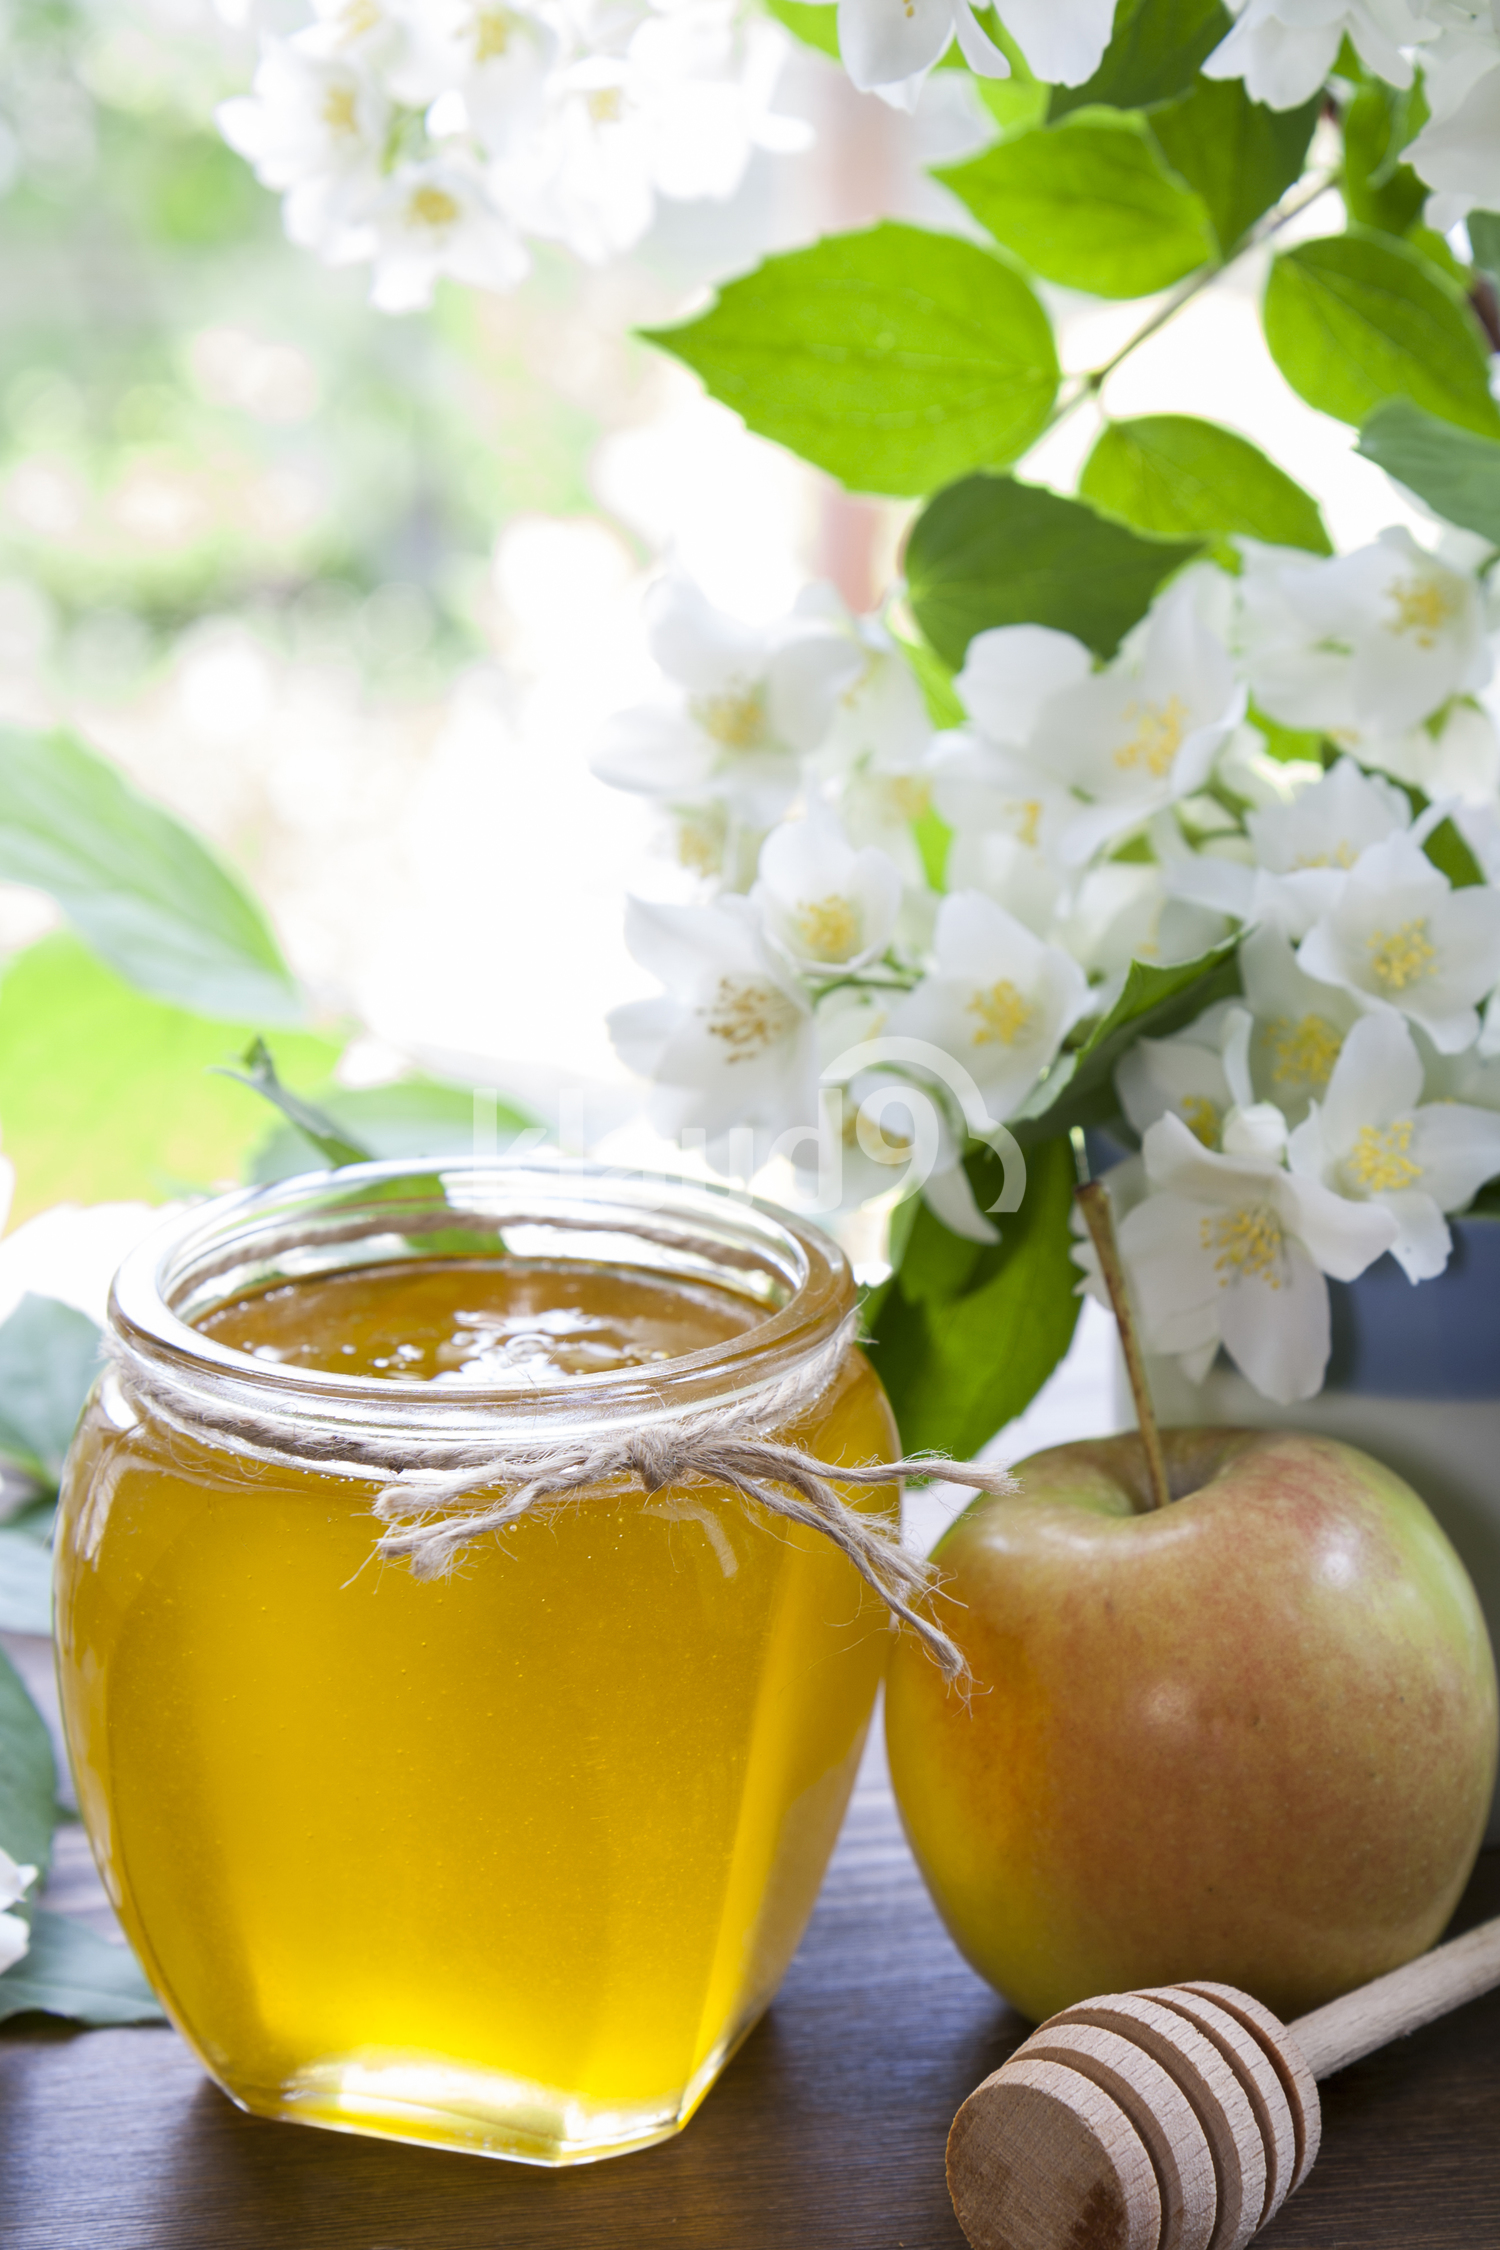 Delicious fresh spring honey in glass jar